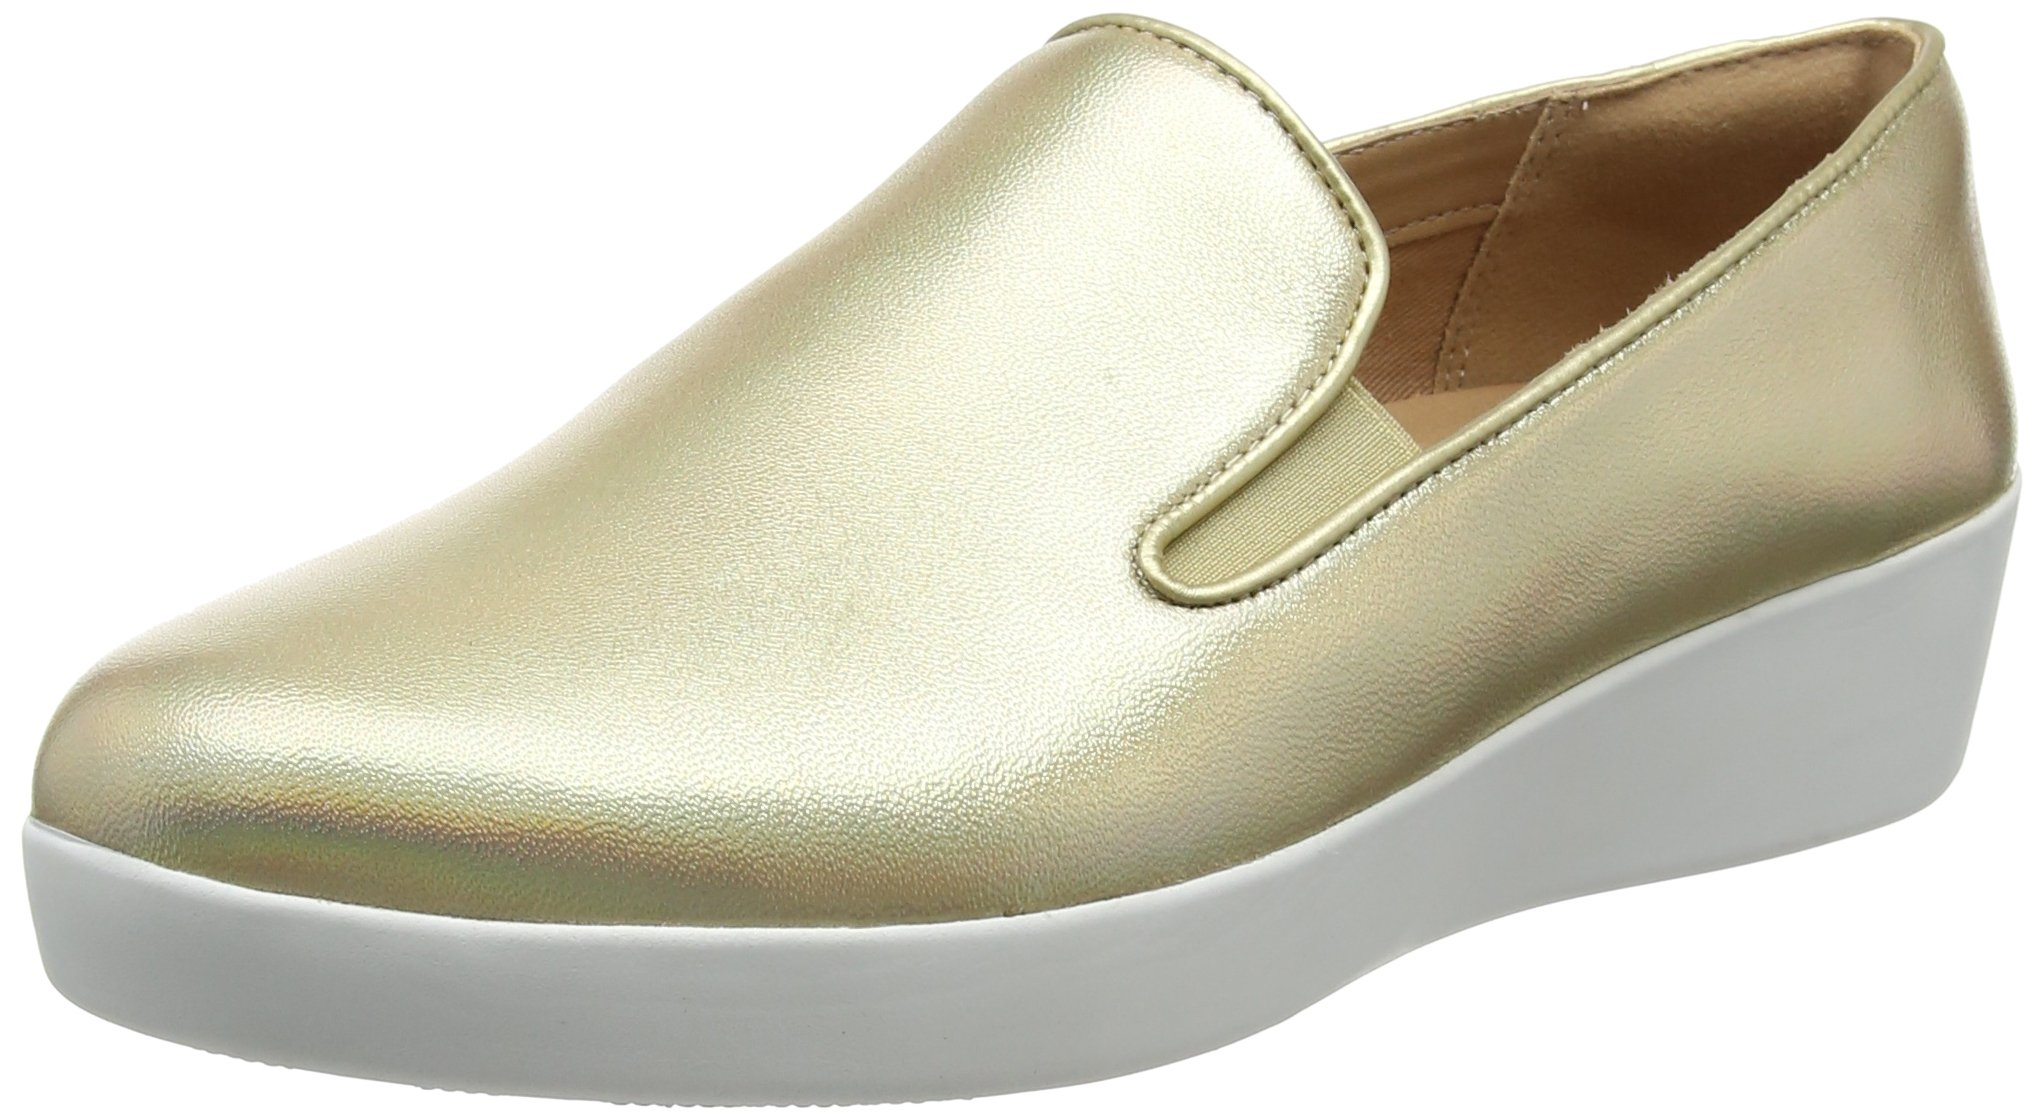 FitFlop Women's Superskate Sneaker, Gold Iridescent, 8 M US